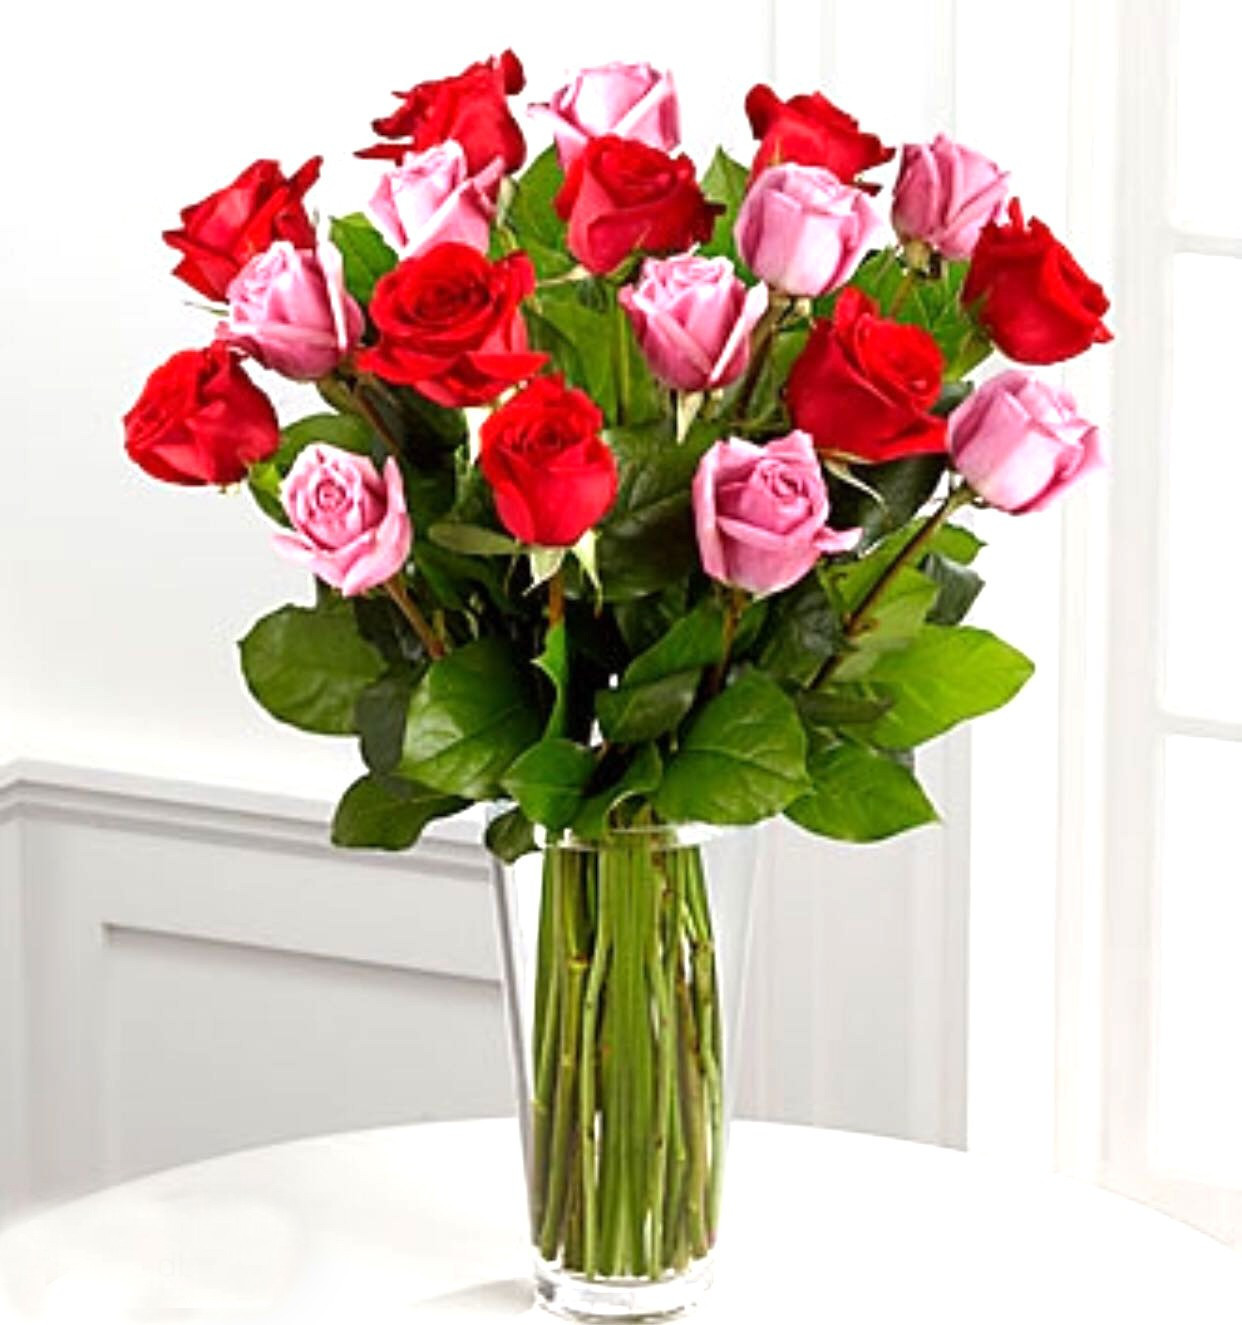 silk flowers for grave vases of pink flowers image fresh decorate the house with artificial flowers regarding pink flowers image awesome pink roses with wax flowerh vases in a vase floweri 0d white